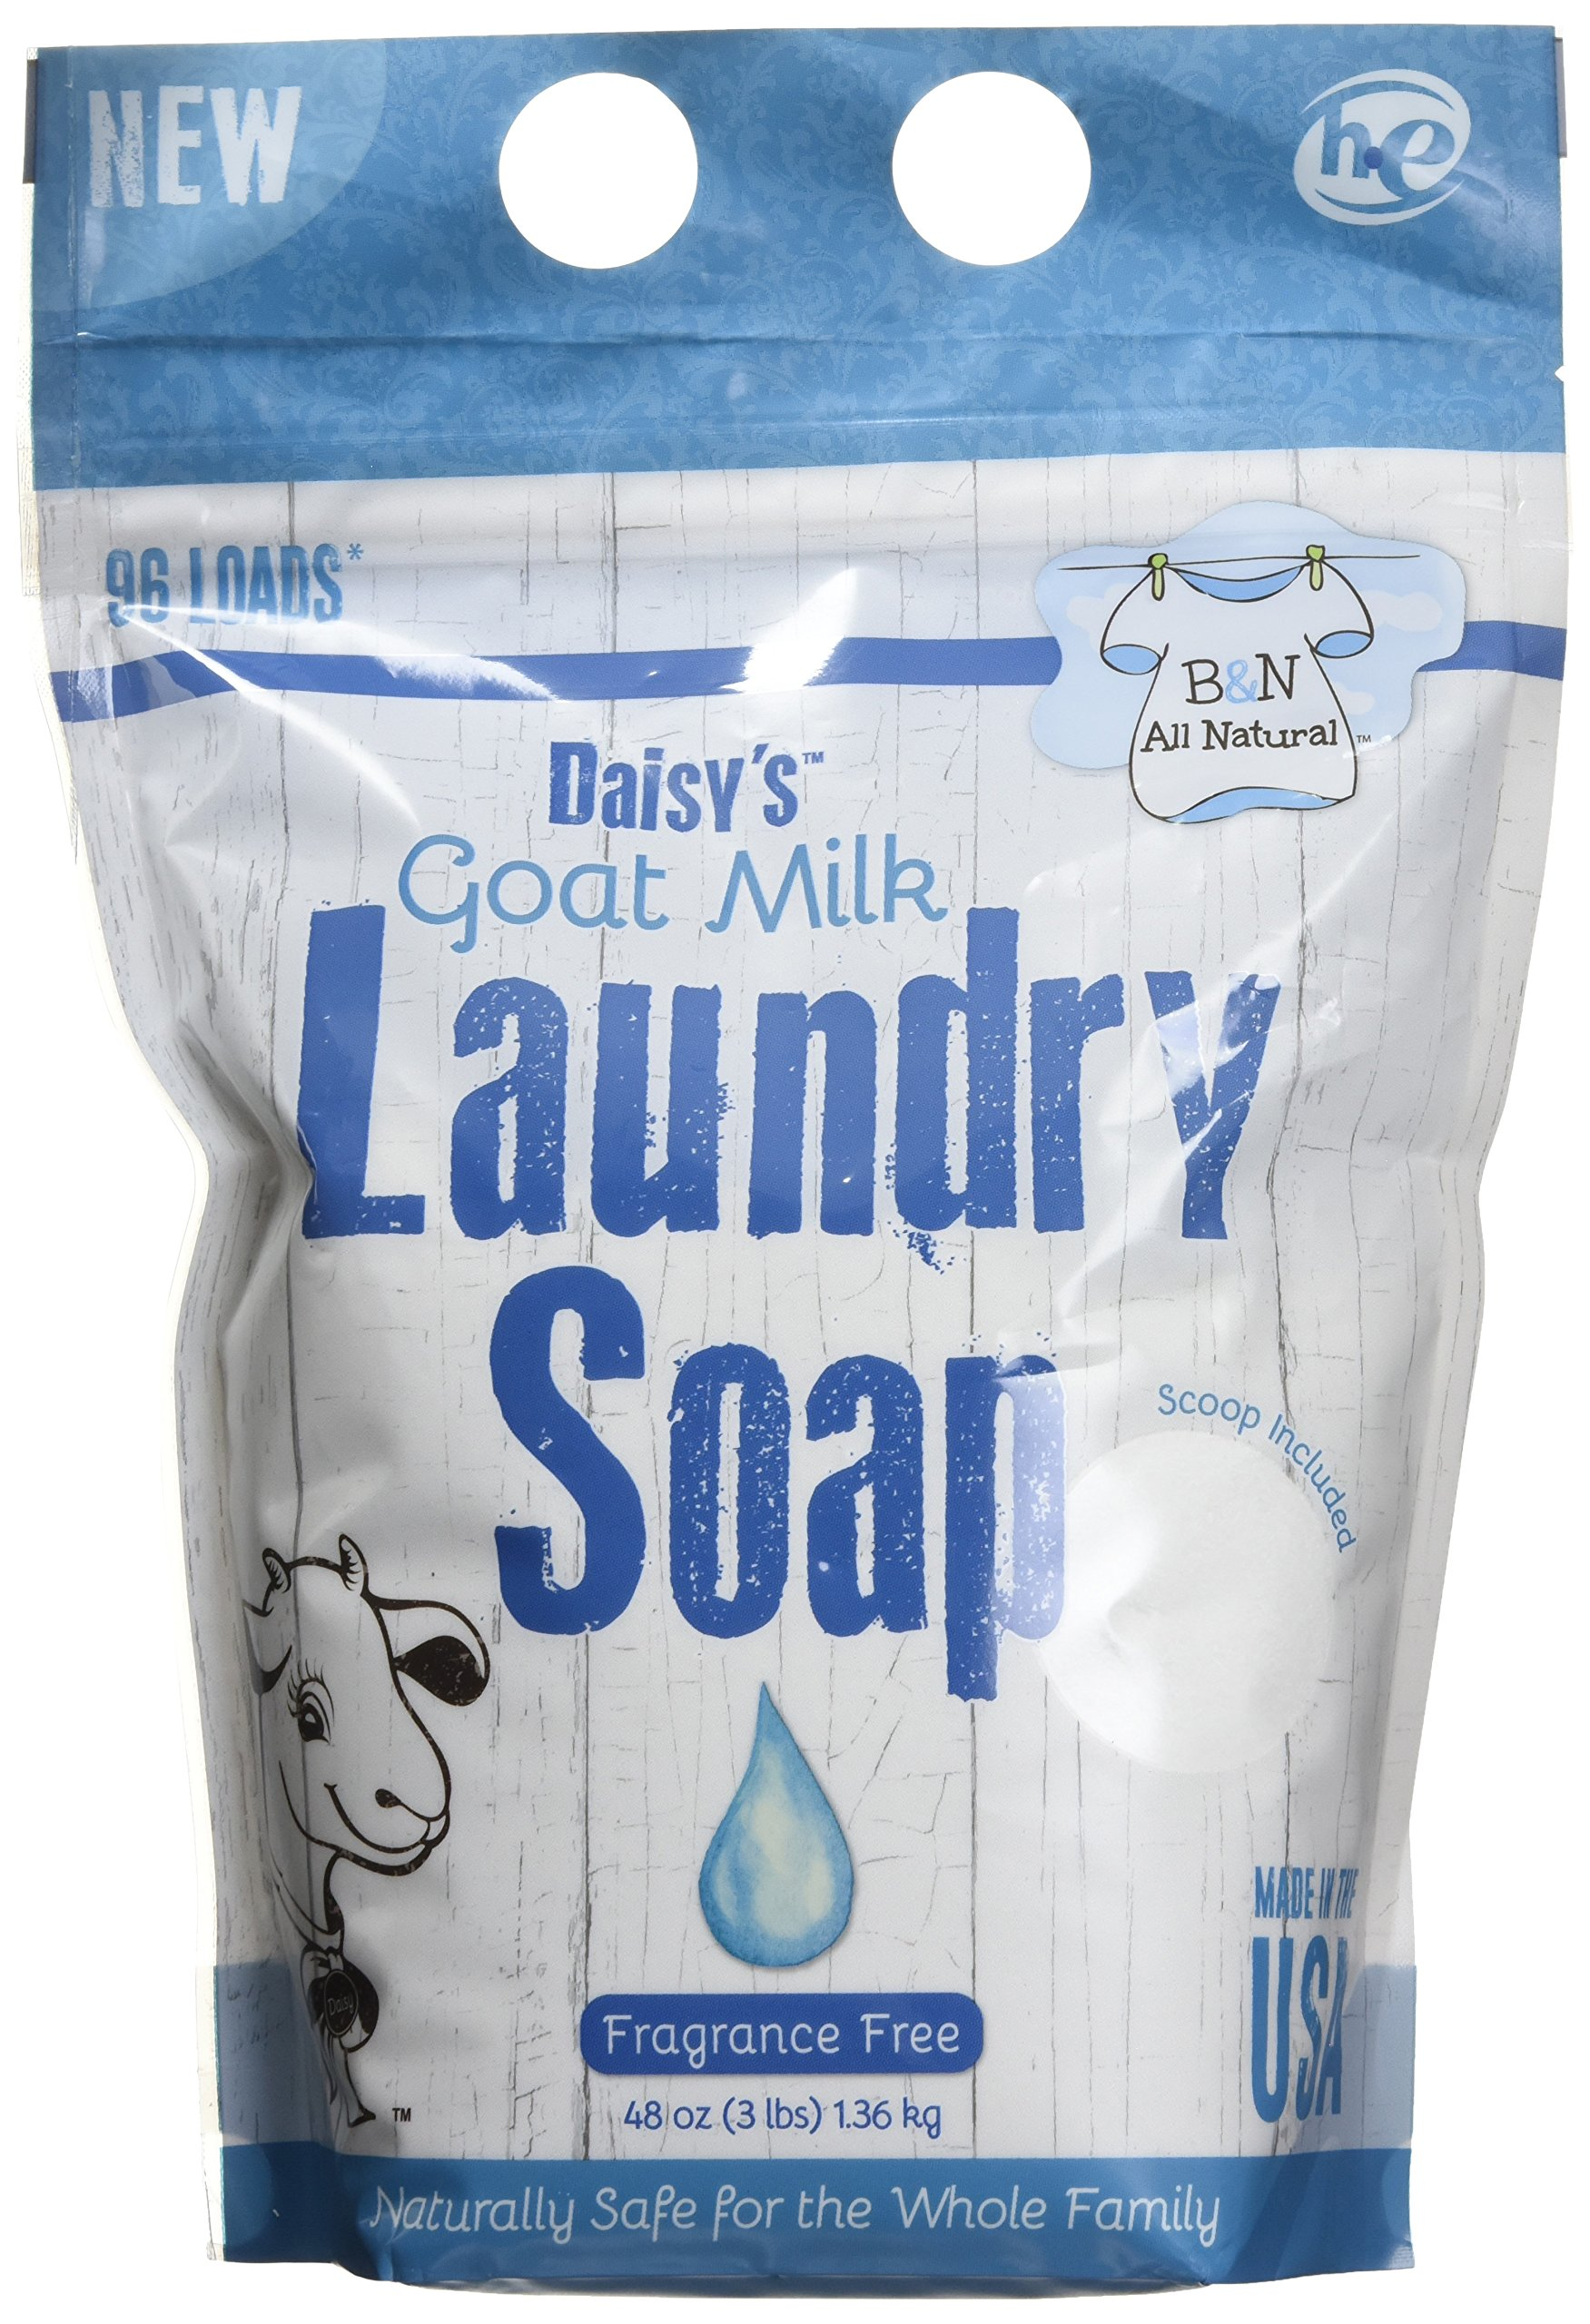 B&N All Natural Daisy's Goat Milk Powdered Soap Laundry Detergent, Fragrance Free, 48 Ounce - 96 Loads